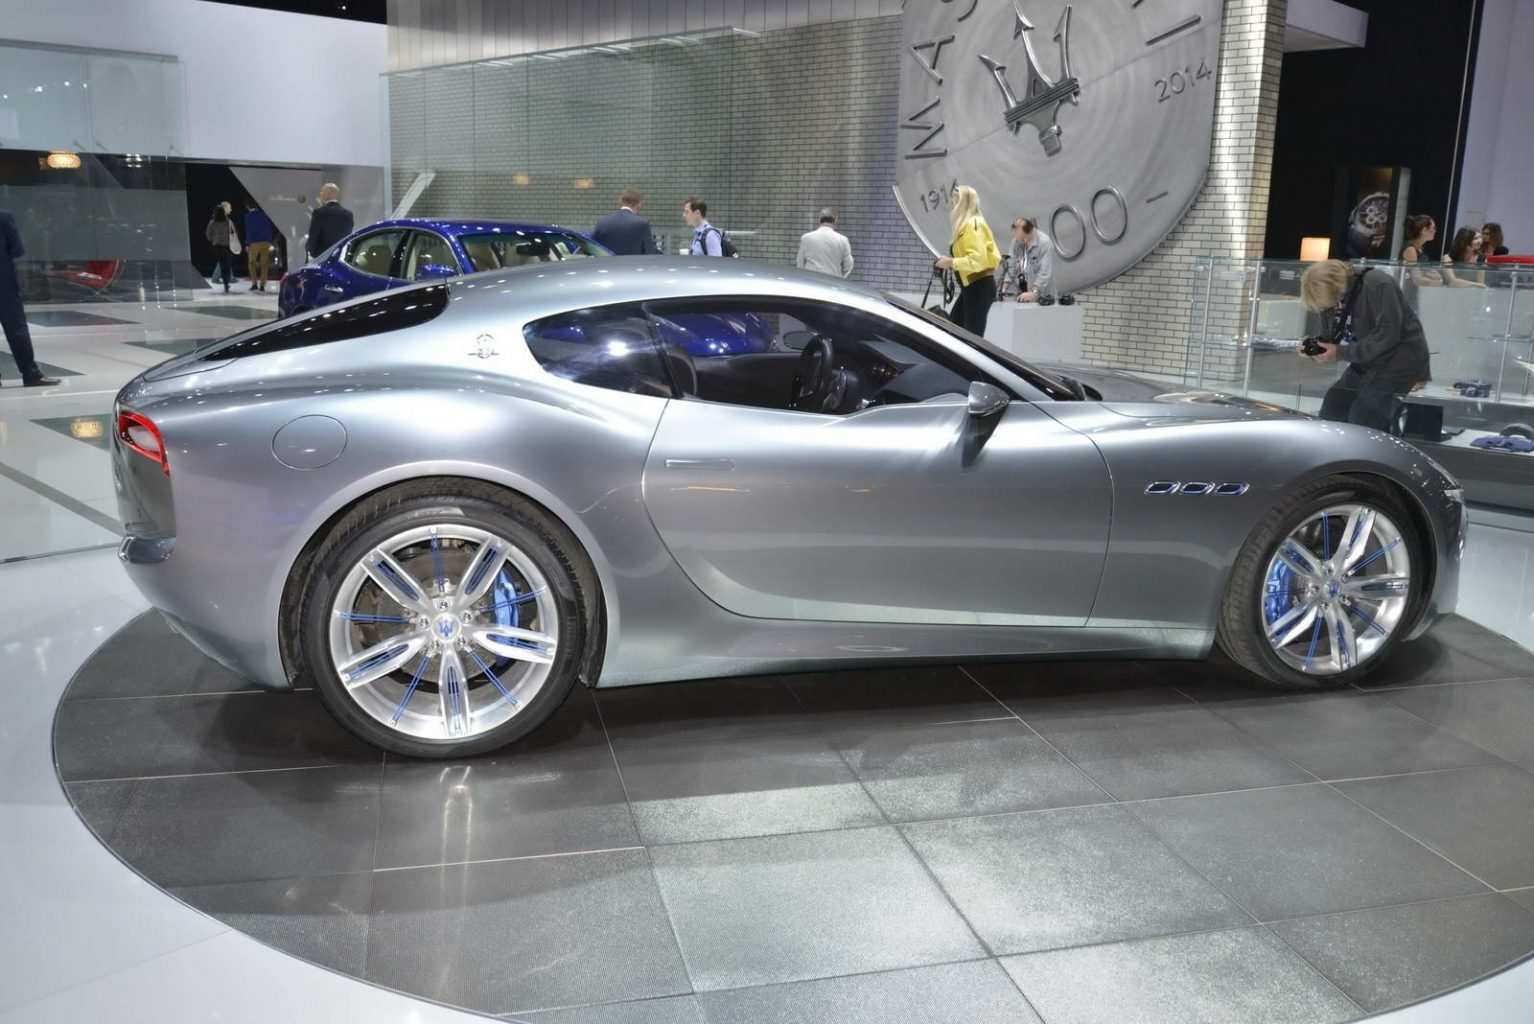 51 All New 2019 Maserati Alfieri Redesign and Concept by 2019 Maserati Alfieri